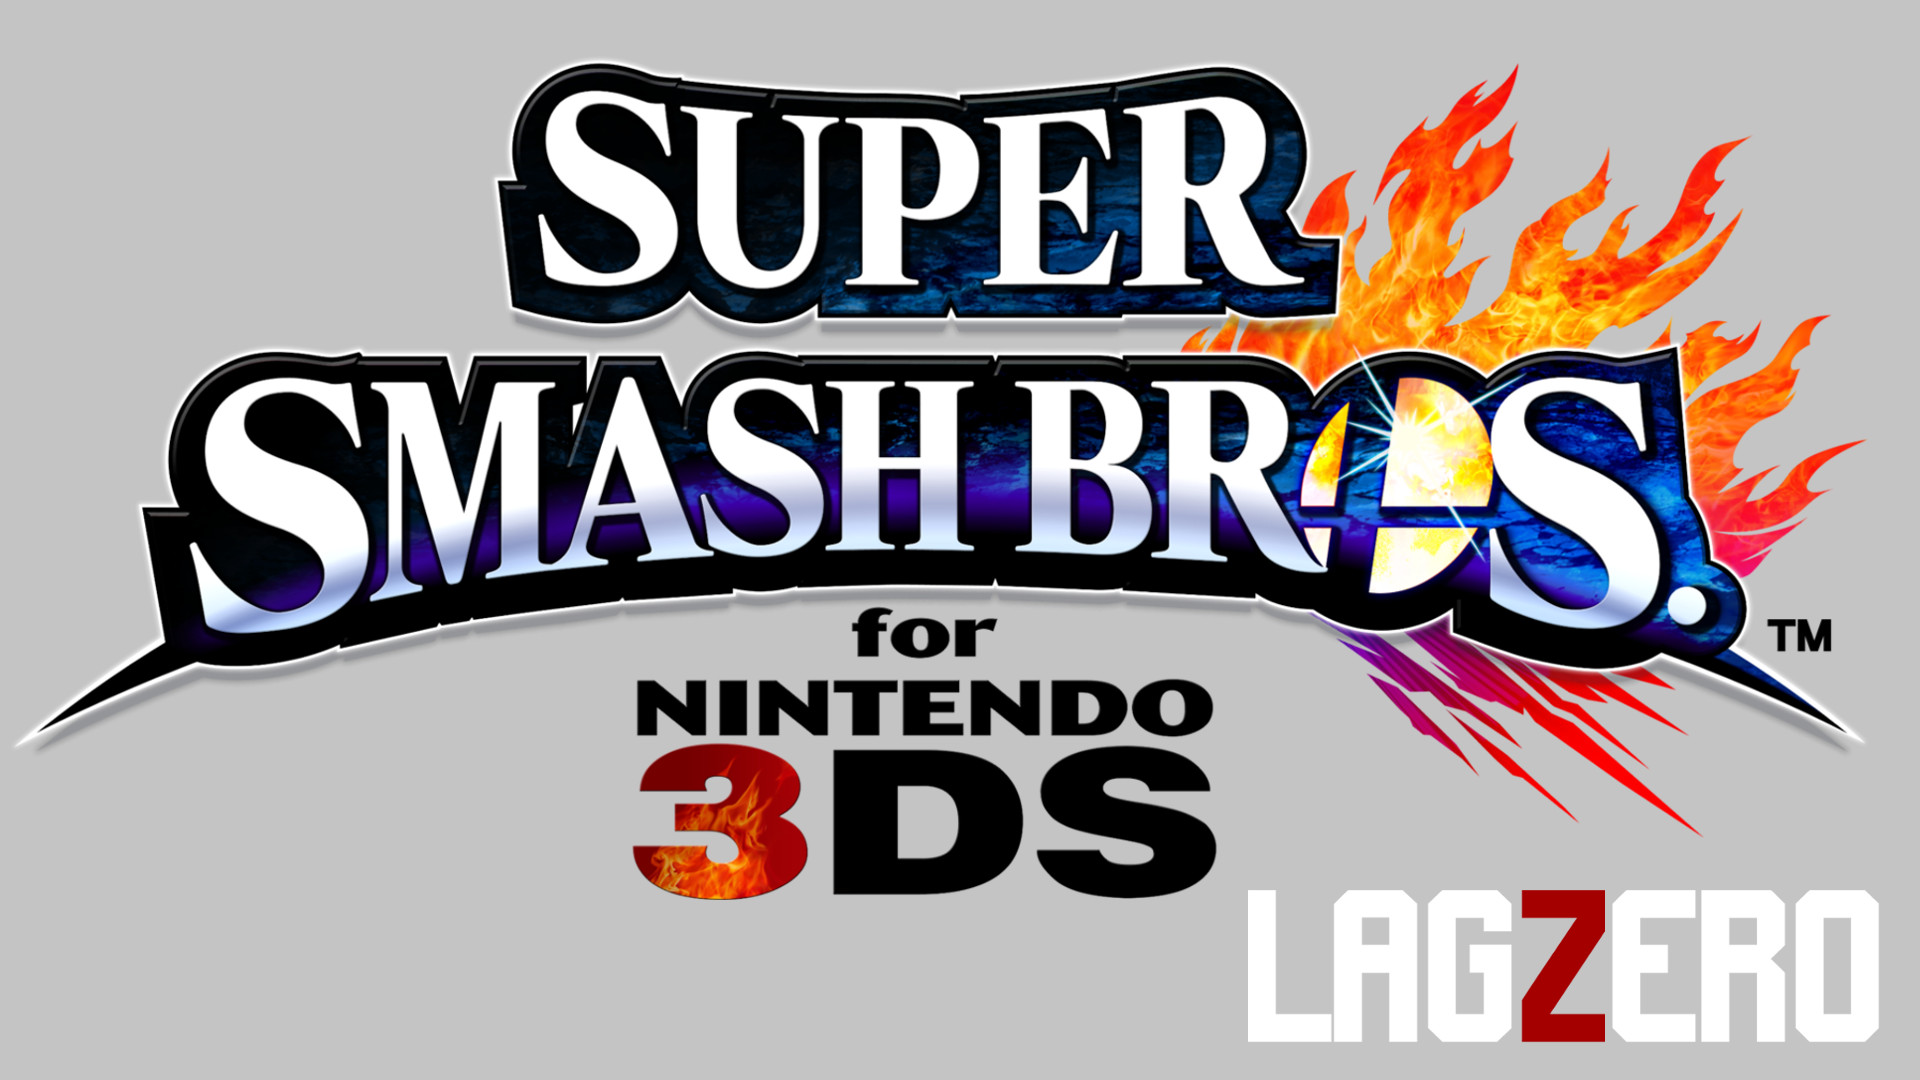 LagZero Analiza: Super Smash Bros 3DS [Review Portatil]